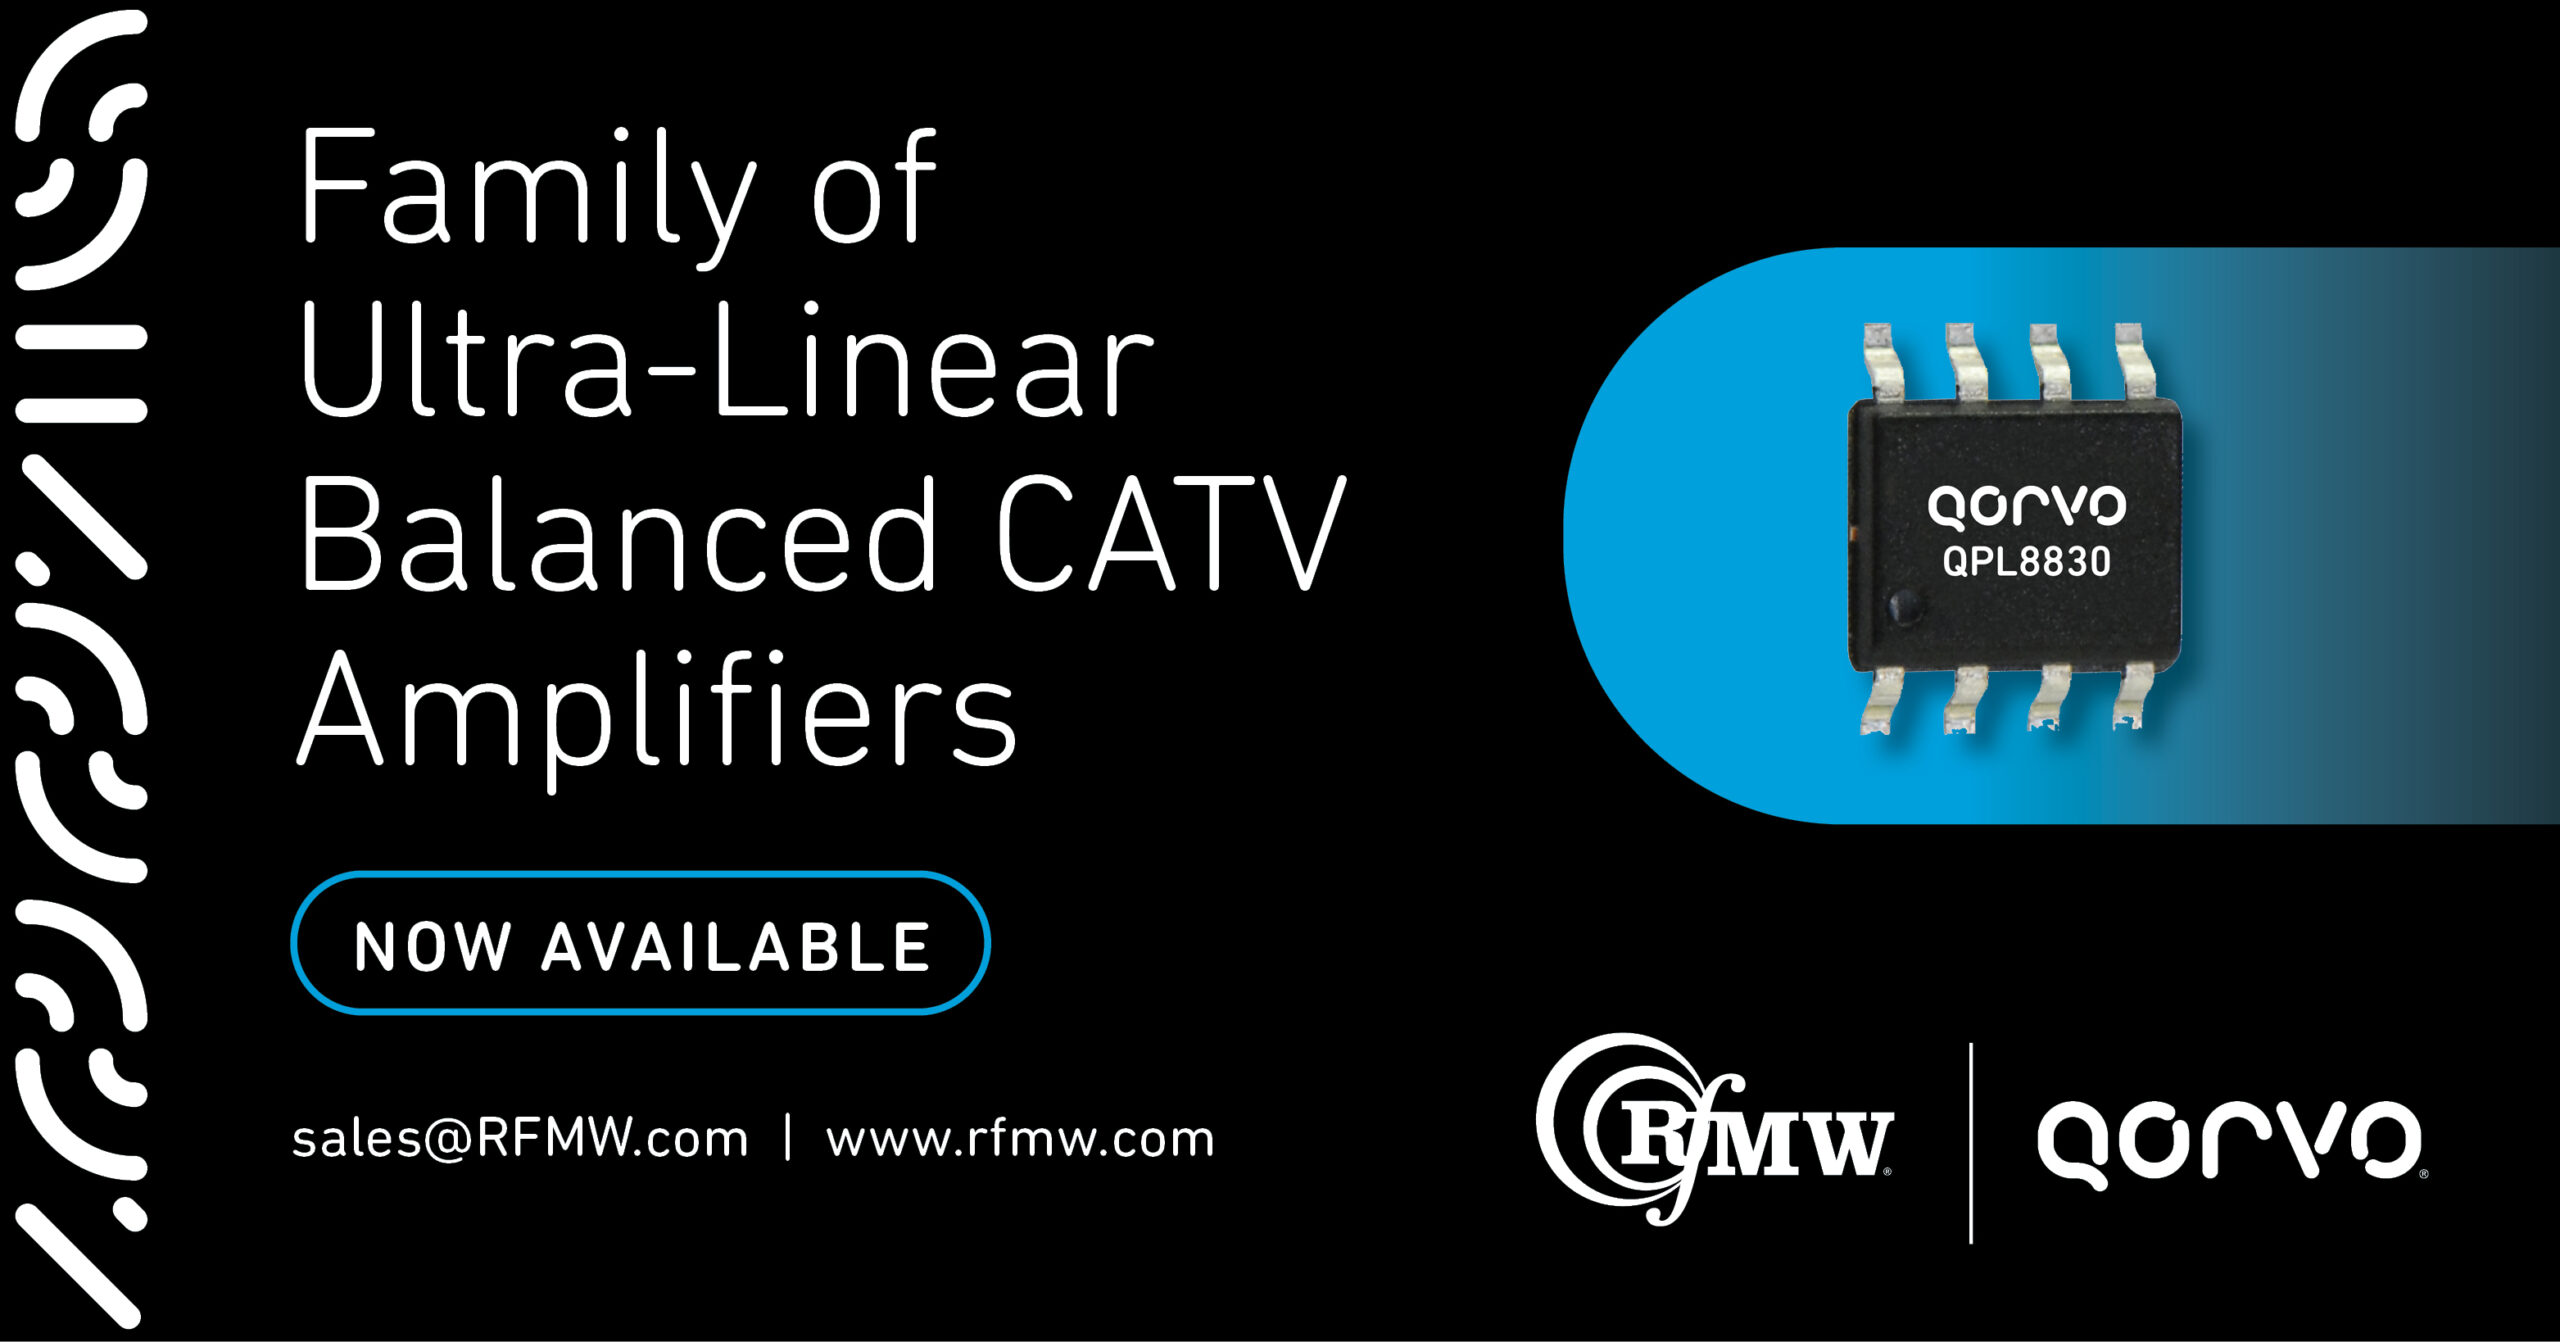 Qorvo family of ultra-linear 75-Ohm CATV balanced amplifier ICs with 5 to 1218 MHz operating bandwidth